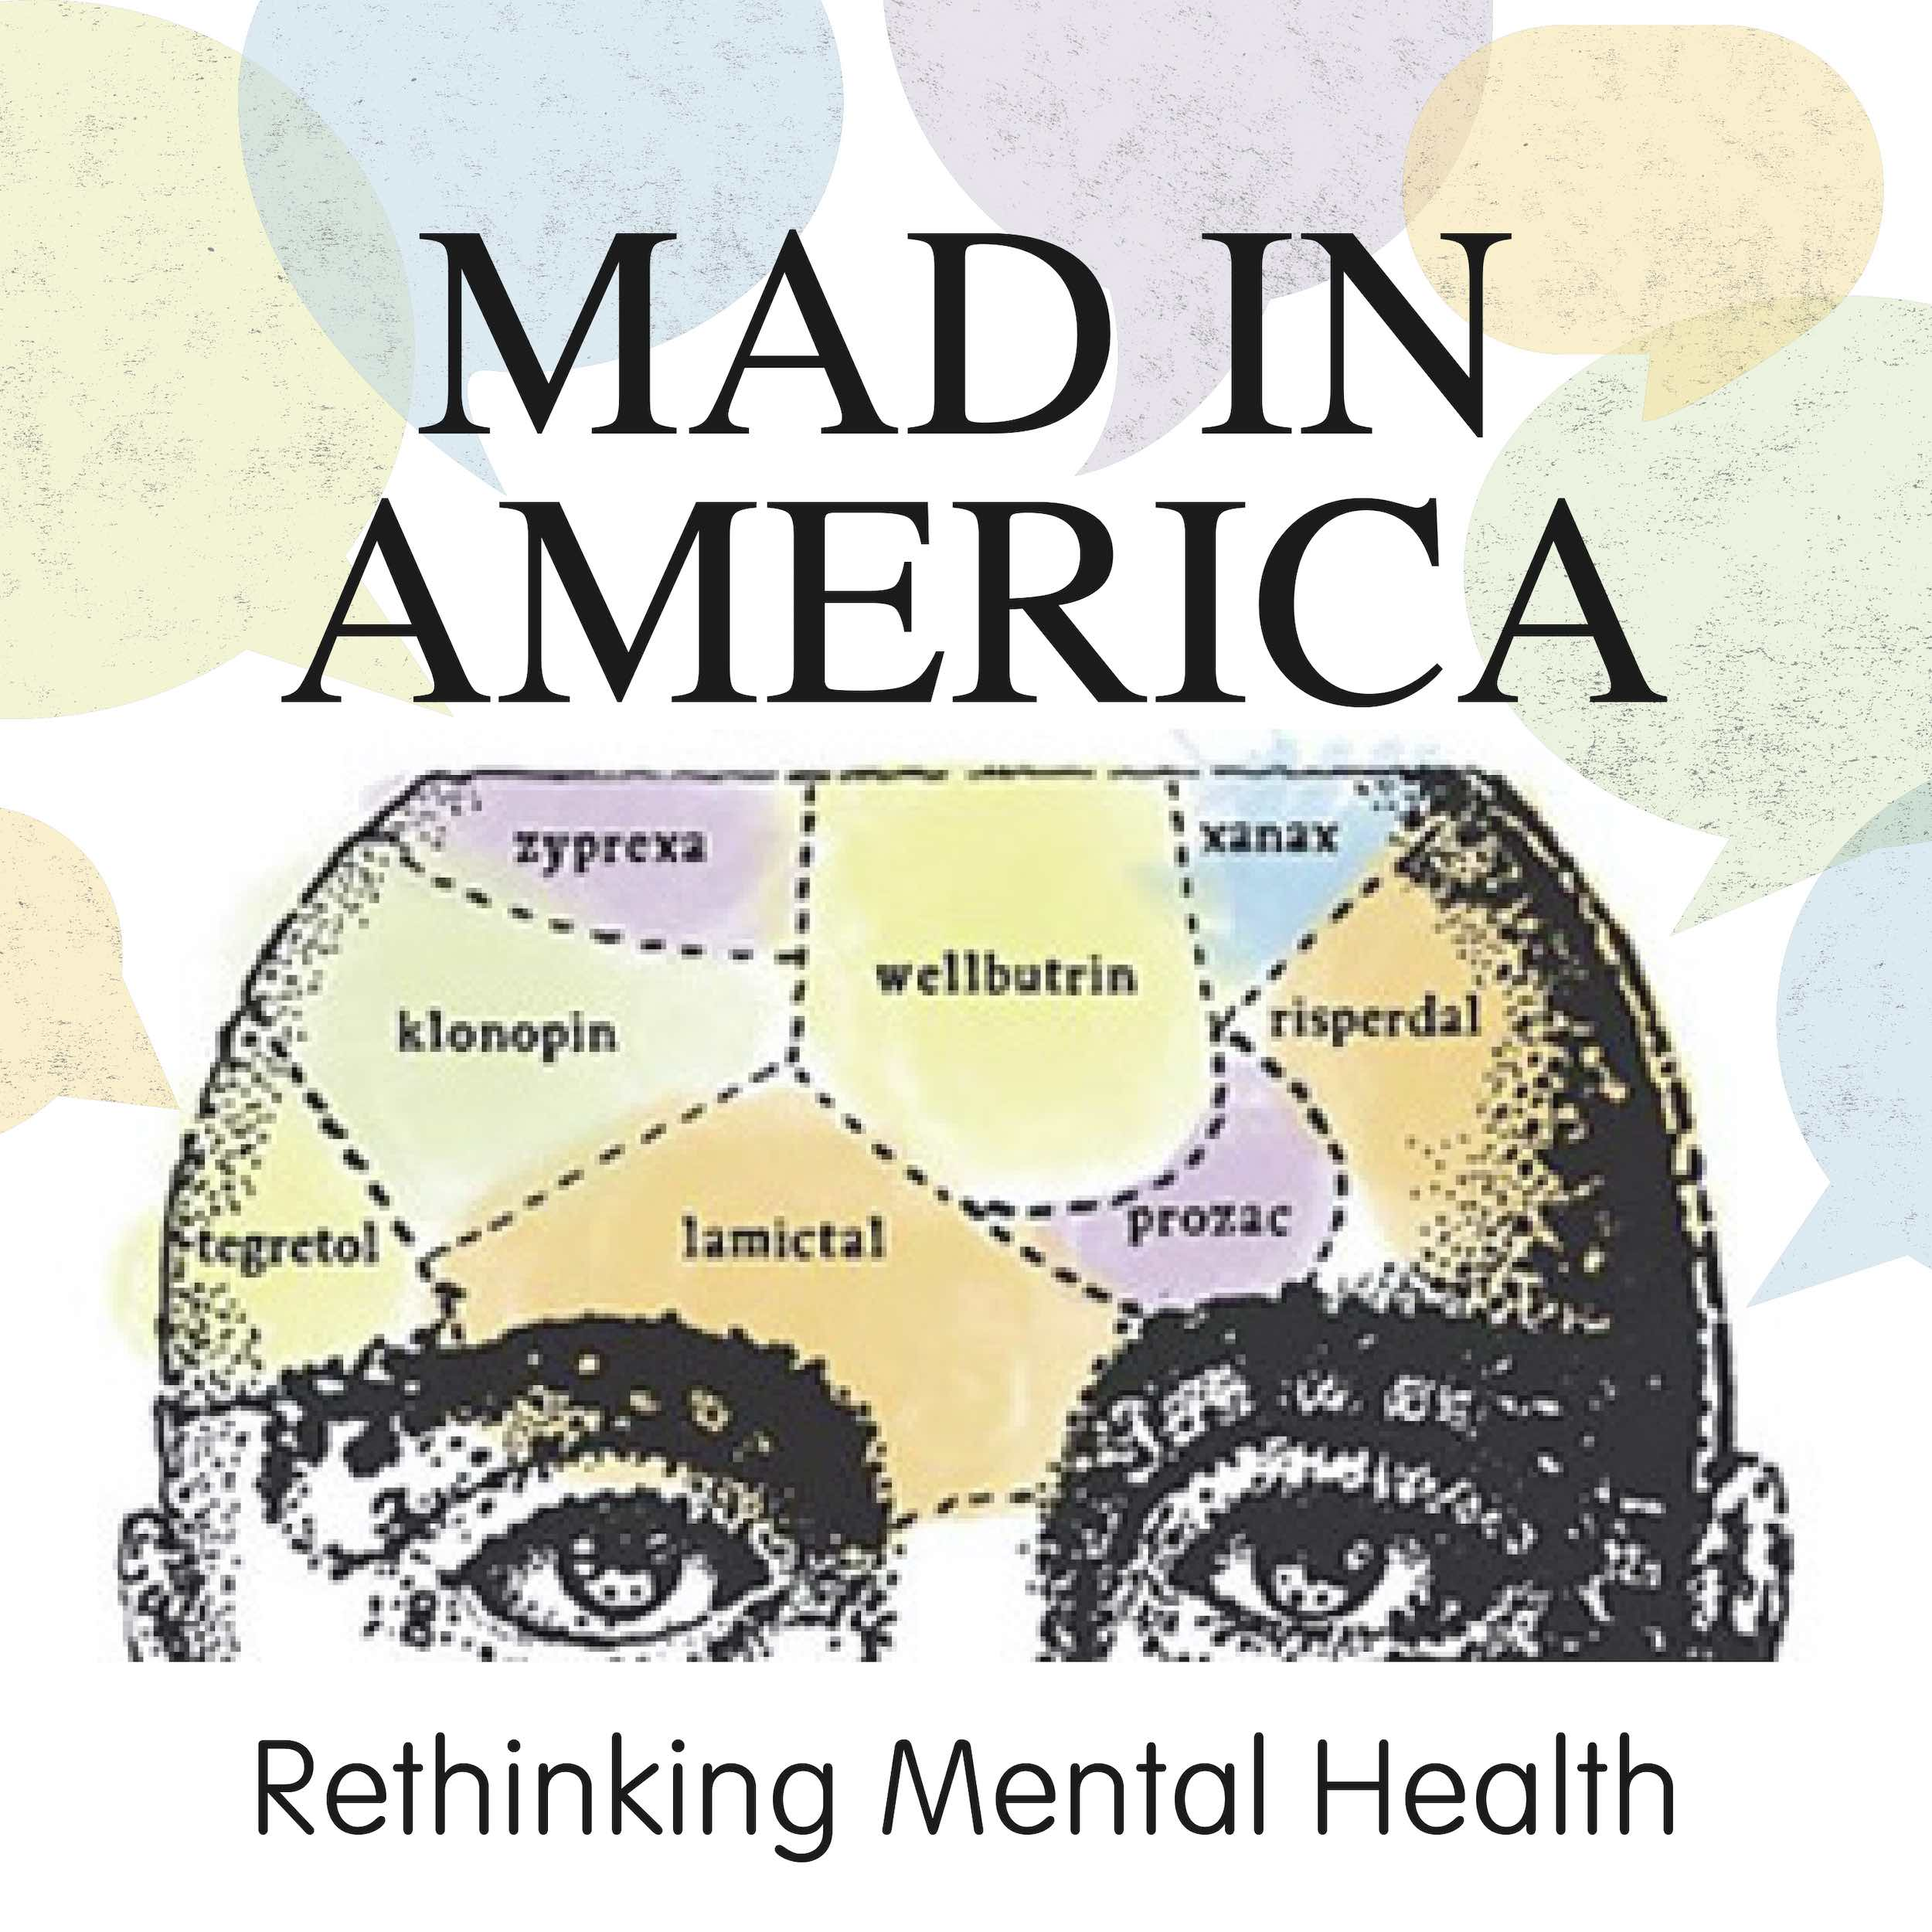 Mad in America: Rethinking Mental Health - Helen Spandler - Uncomfortable Truths in Survivor Narratives